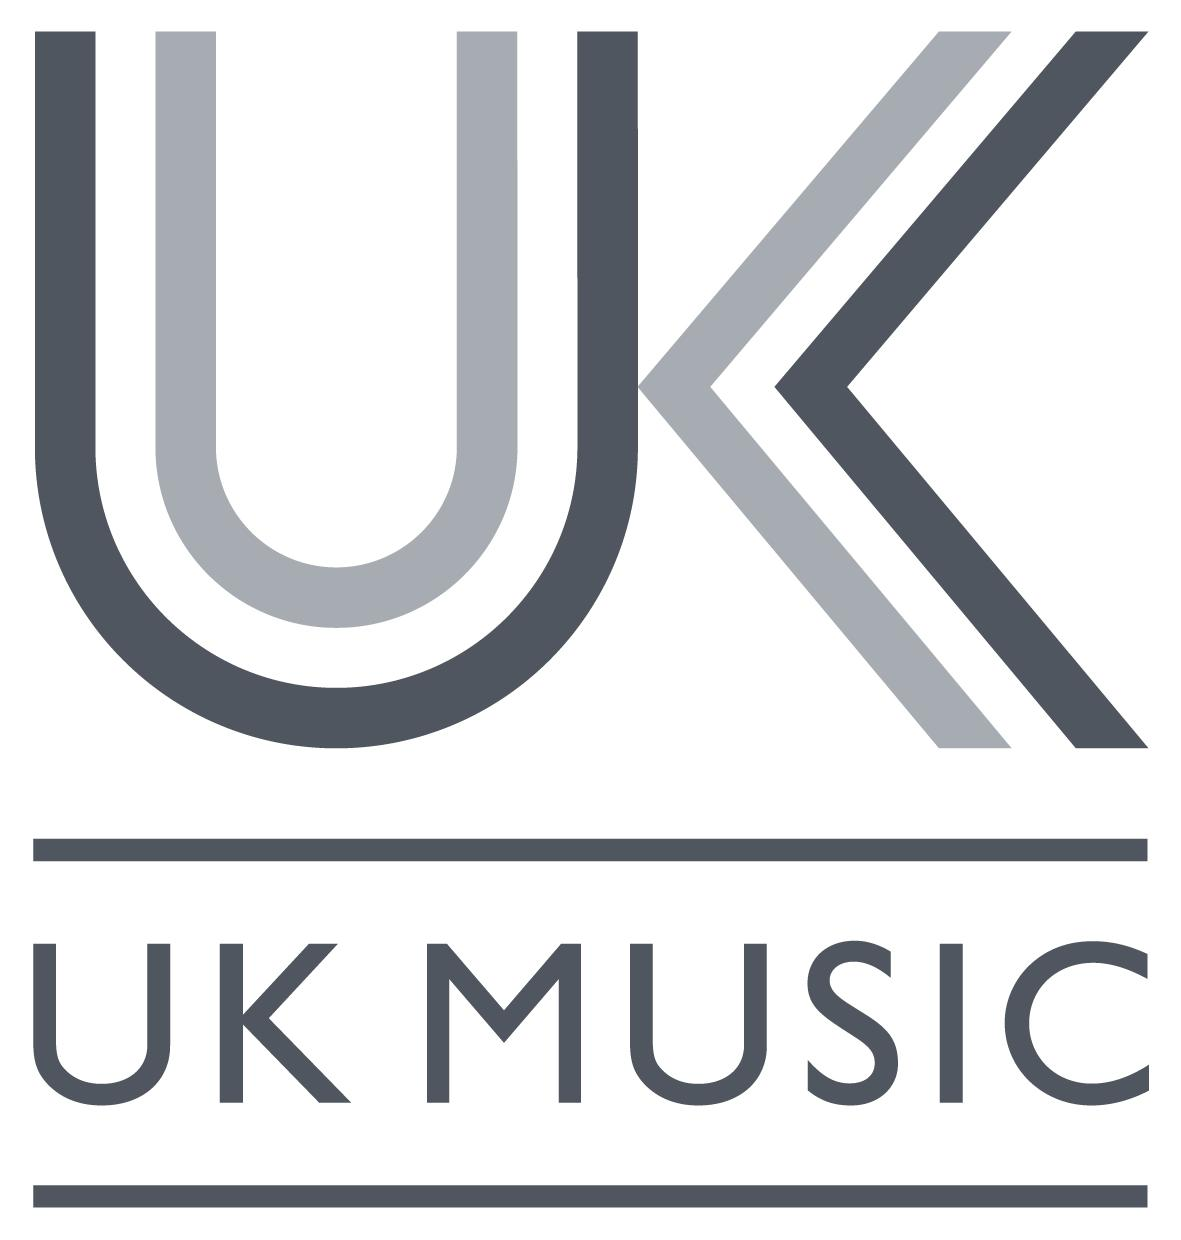 UK_Music_logo.jpg